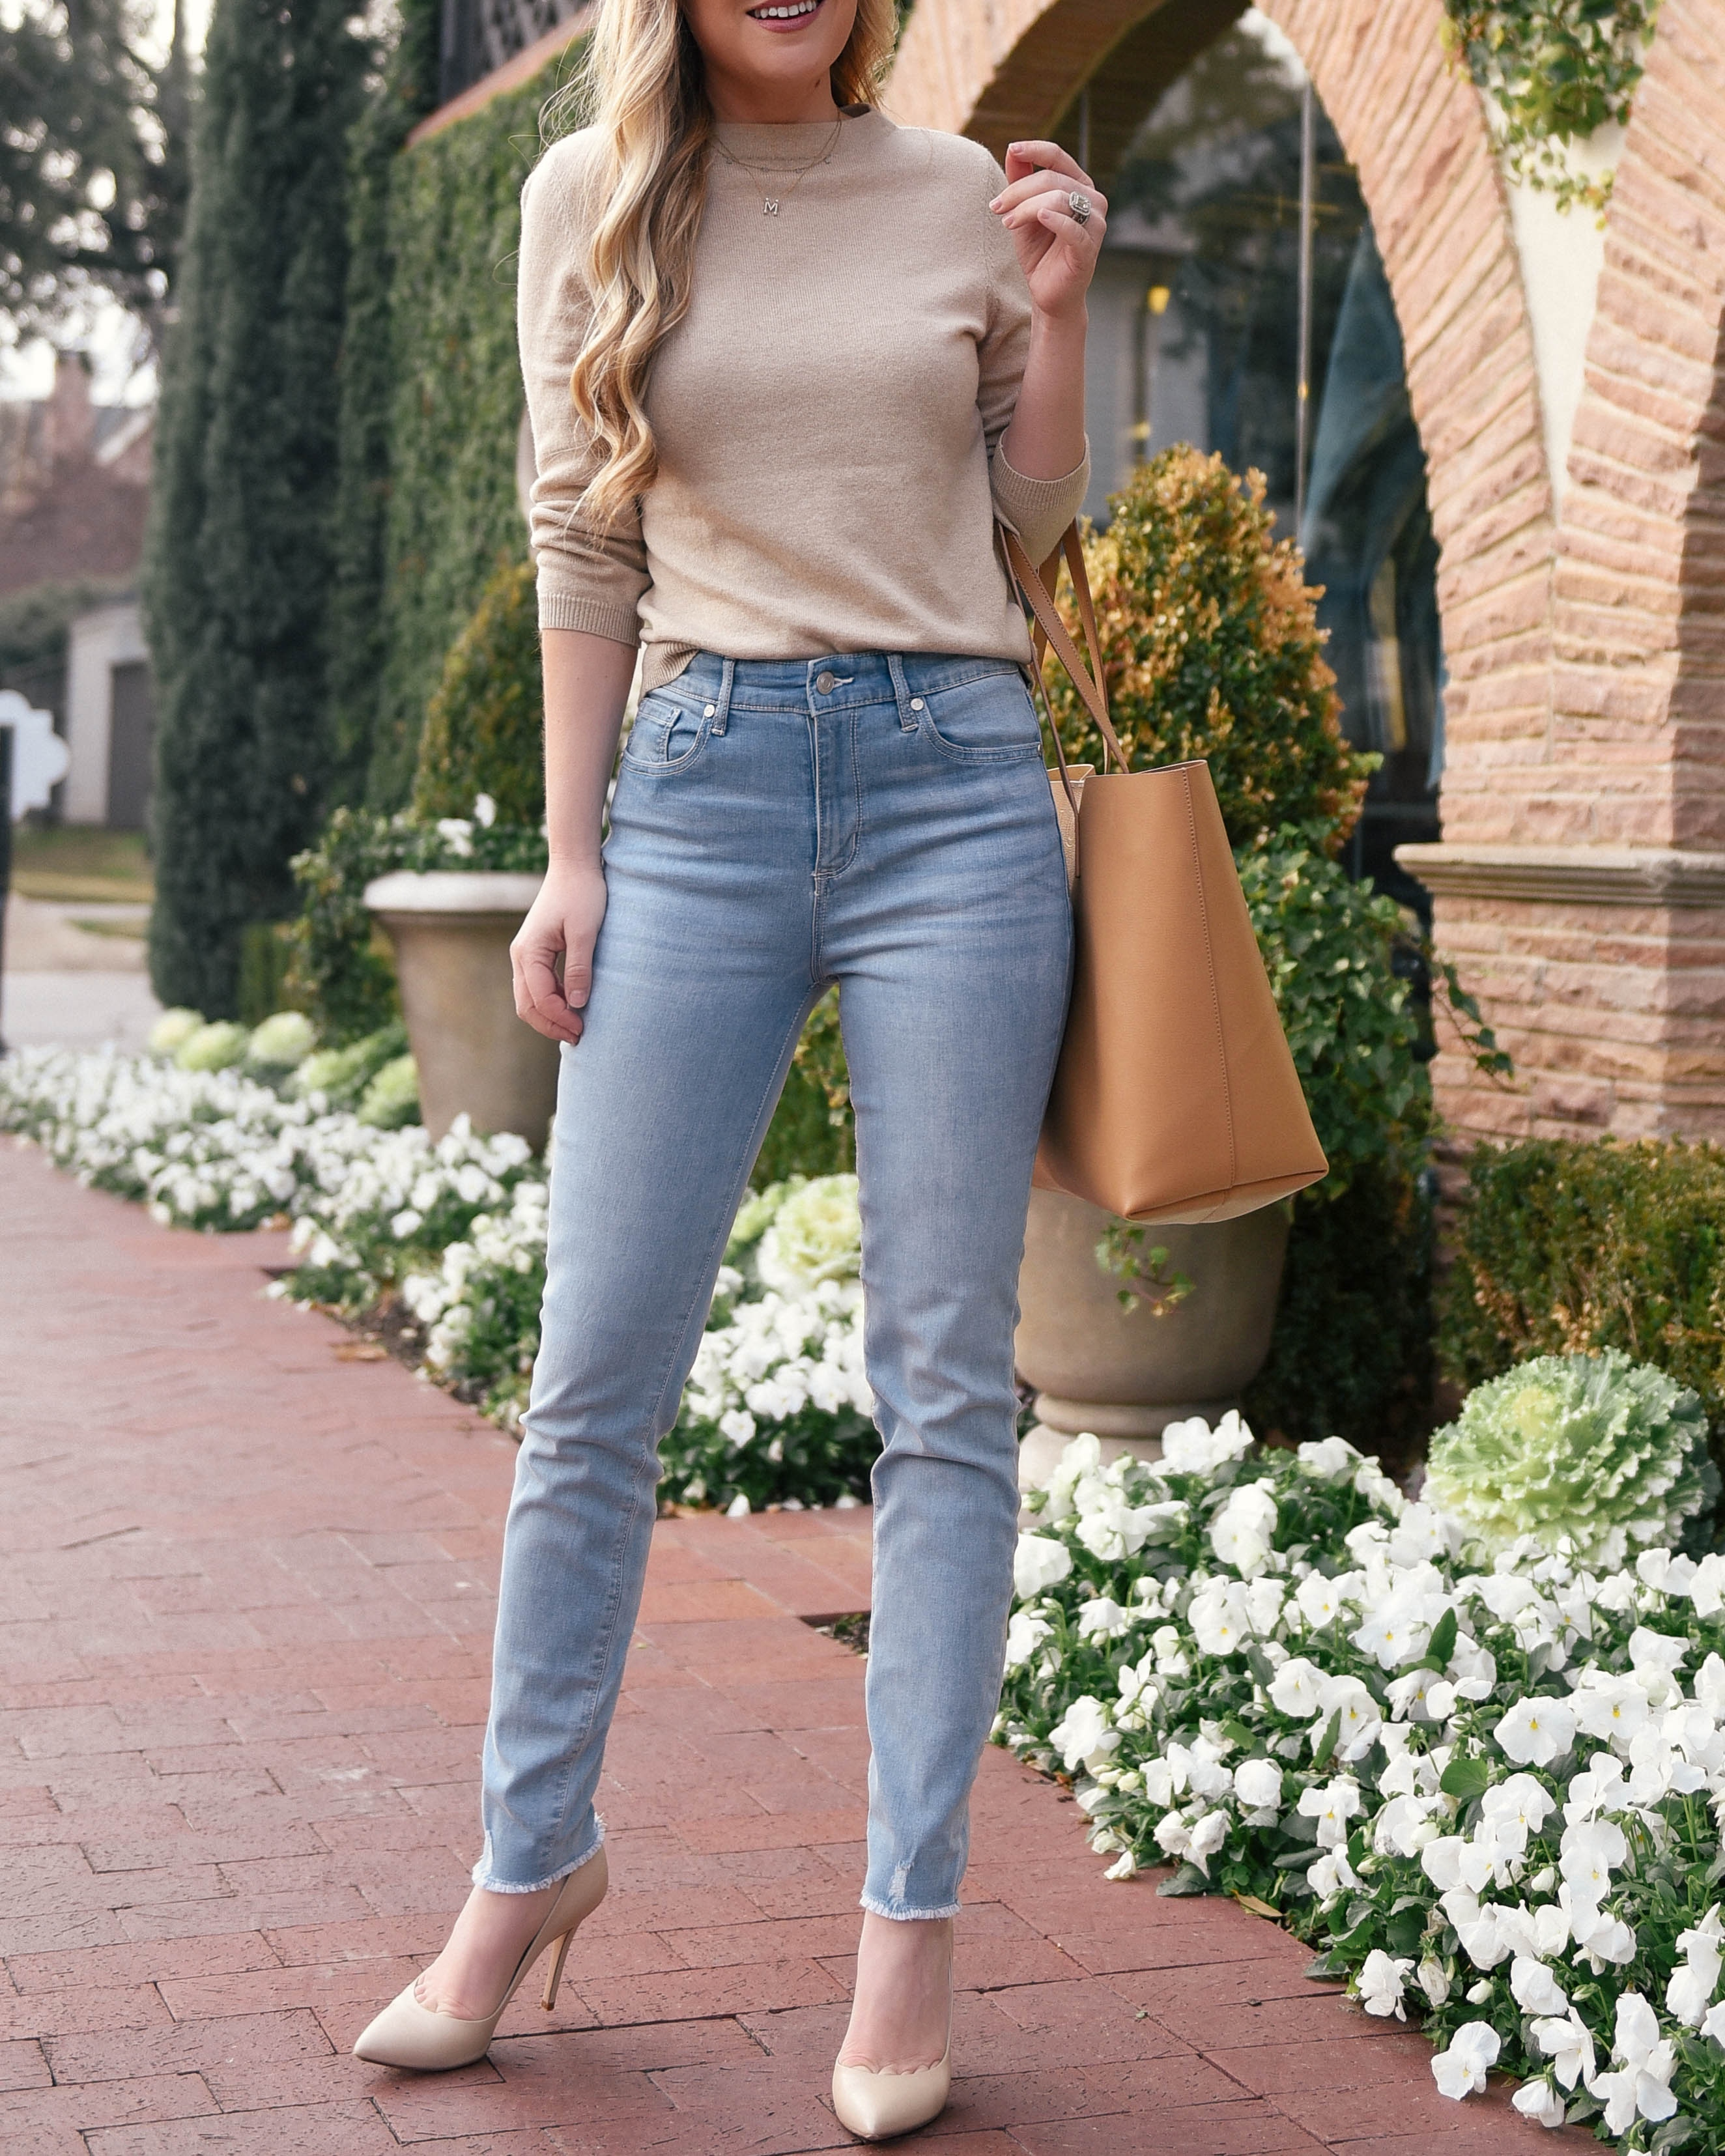 Lo-Murphy-Dallas-Blogger-Sofia-Jeans-Camel-Sweater-Jeans-Under-30-light-wash-jeans